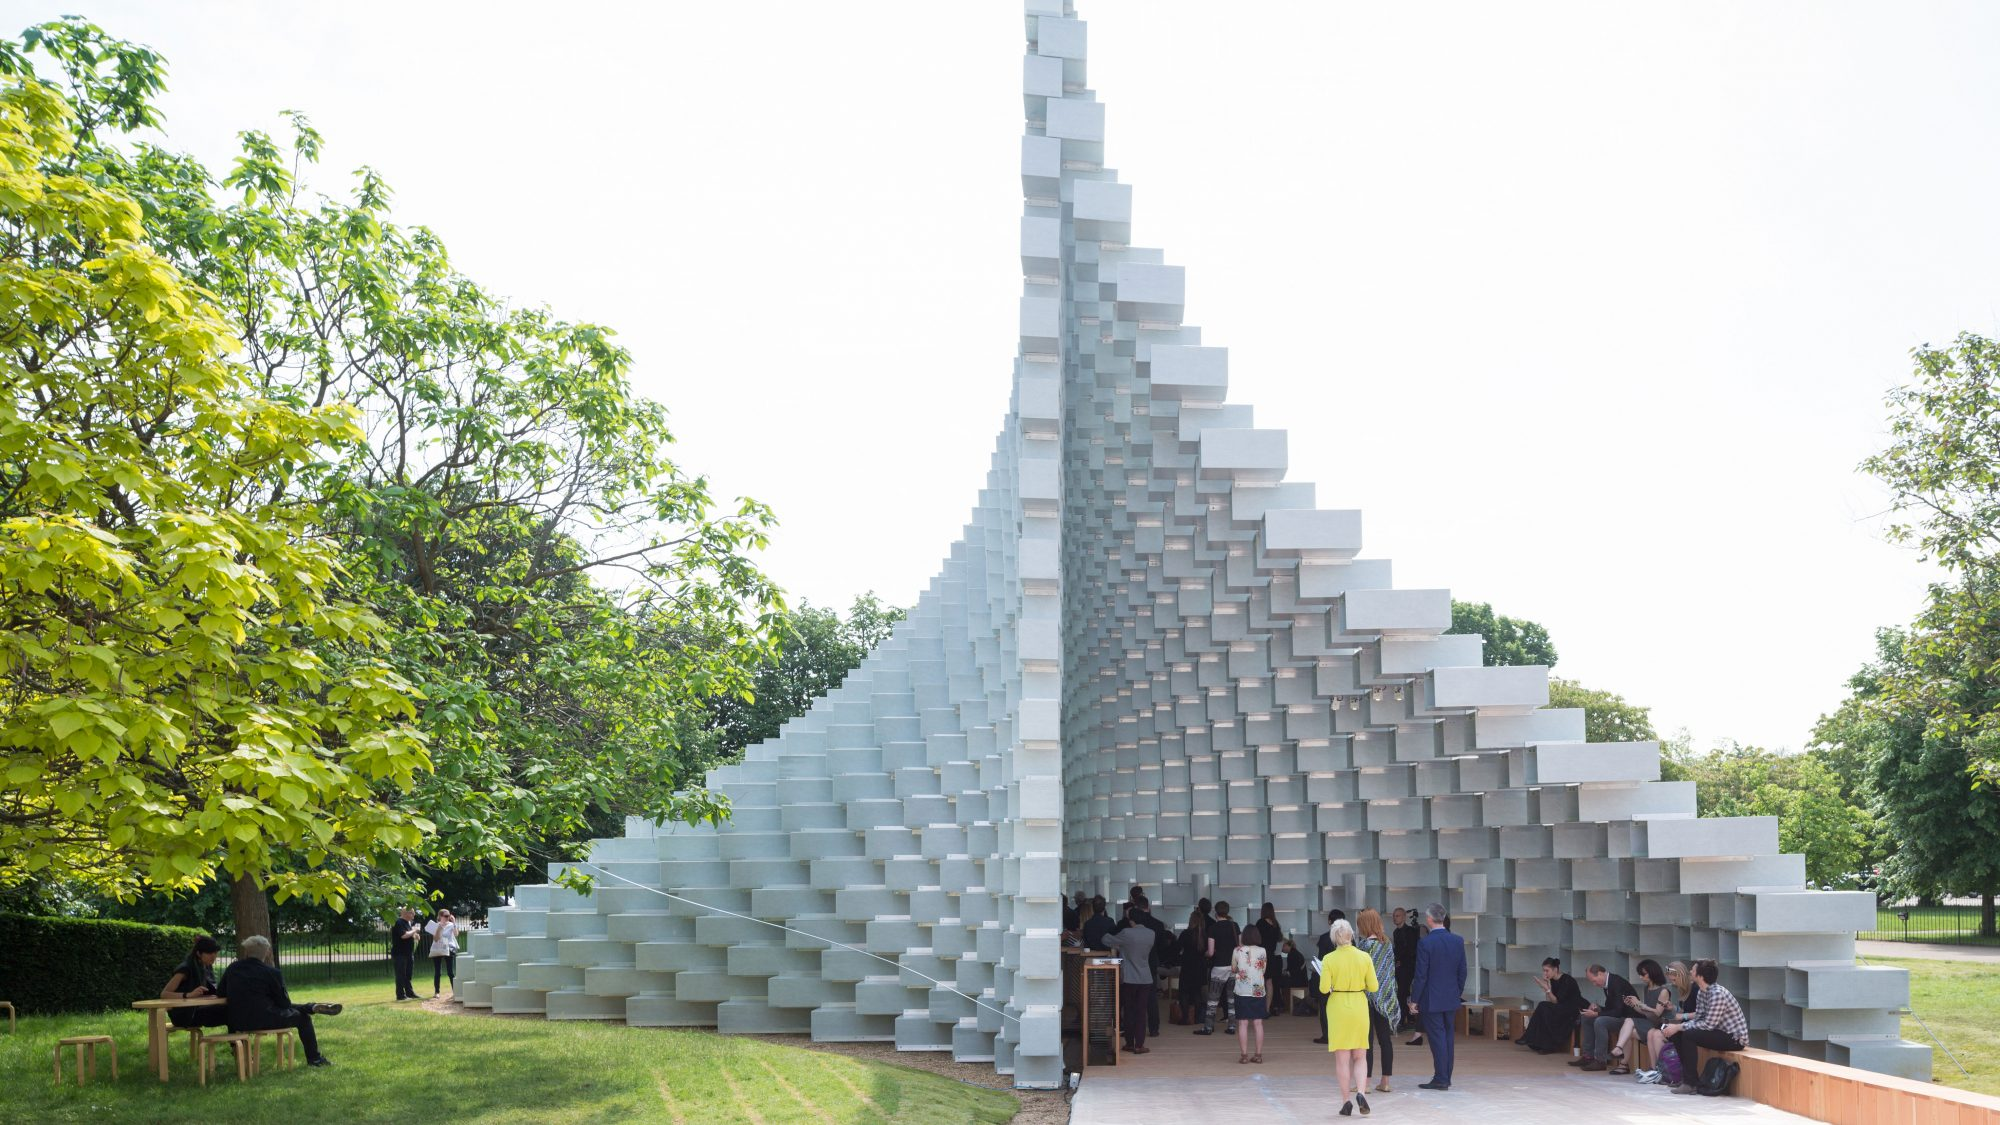 serpentine-summer-pavilion-1-FT-BLOG0716.jpg